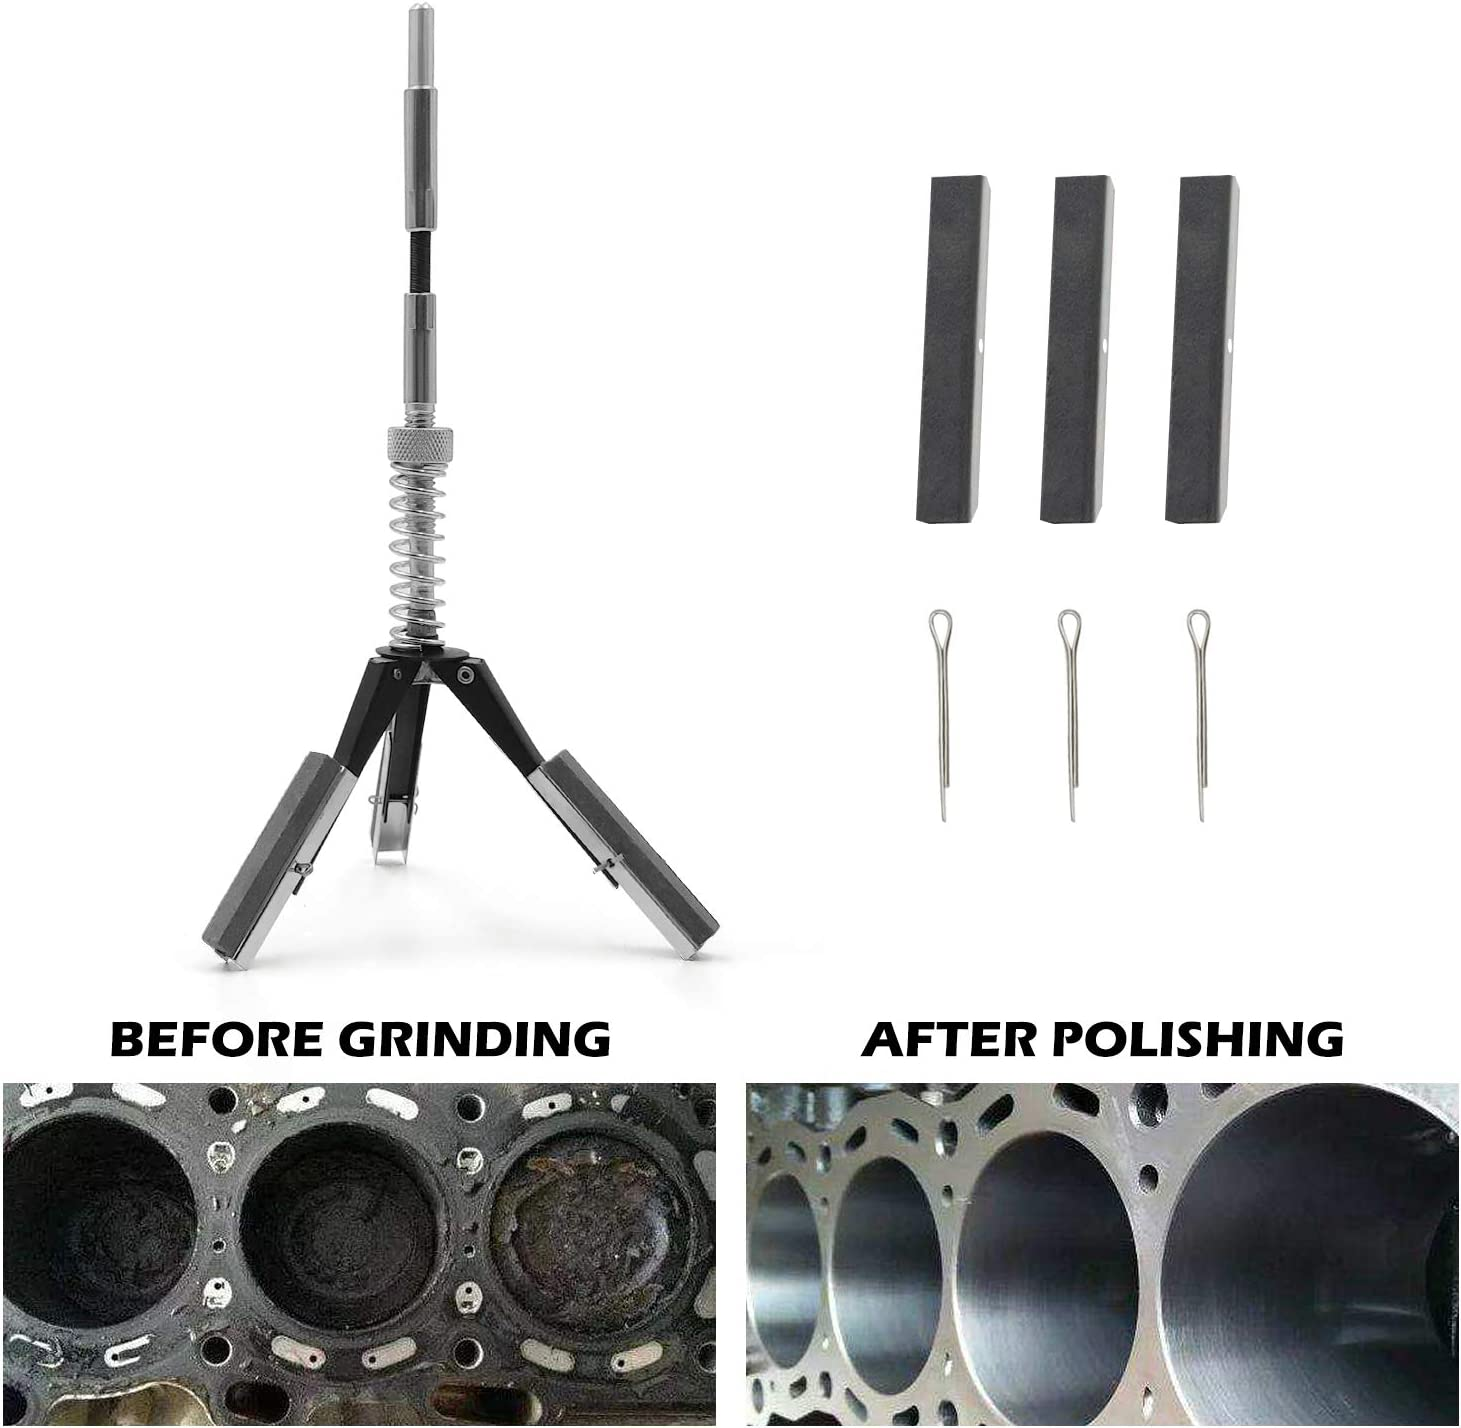 Engine Cylinder Hone Adjustable Deglaze Set for Grinding Holes from 1 1//4 to 3 1//2 ID with 3 Pieces 220 Grit Stones